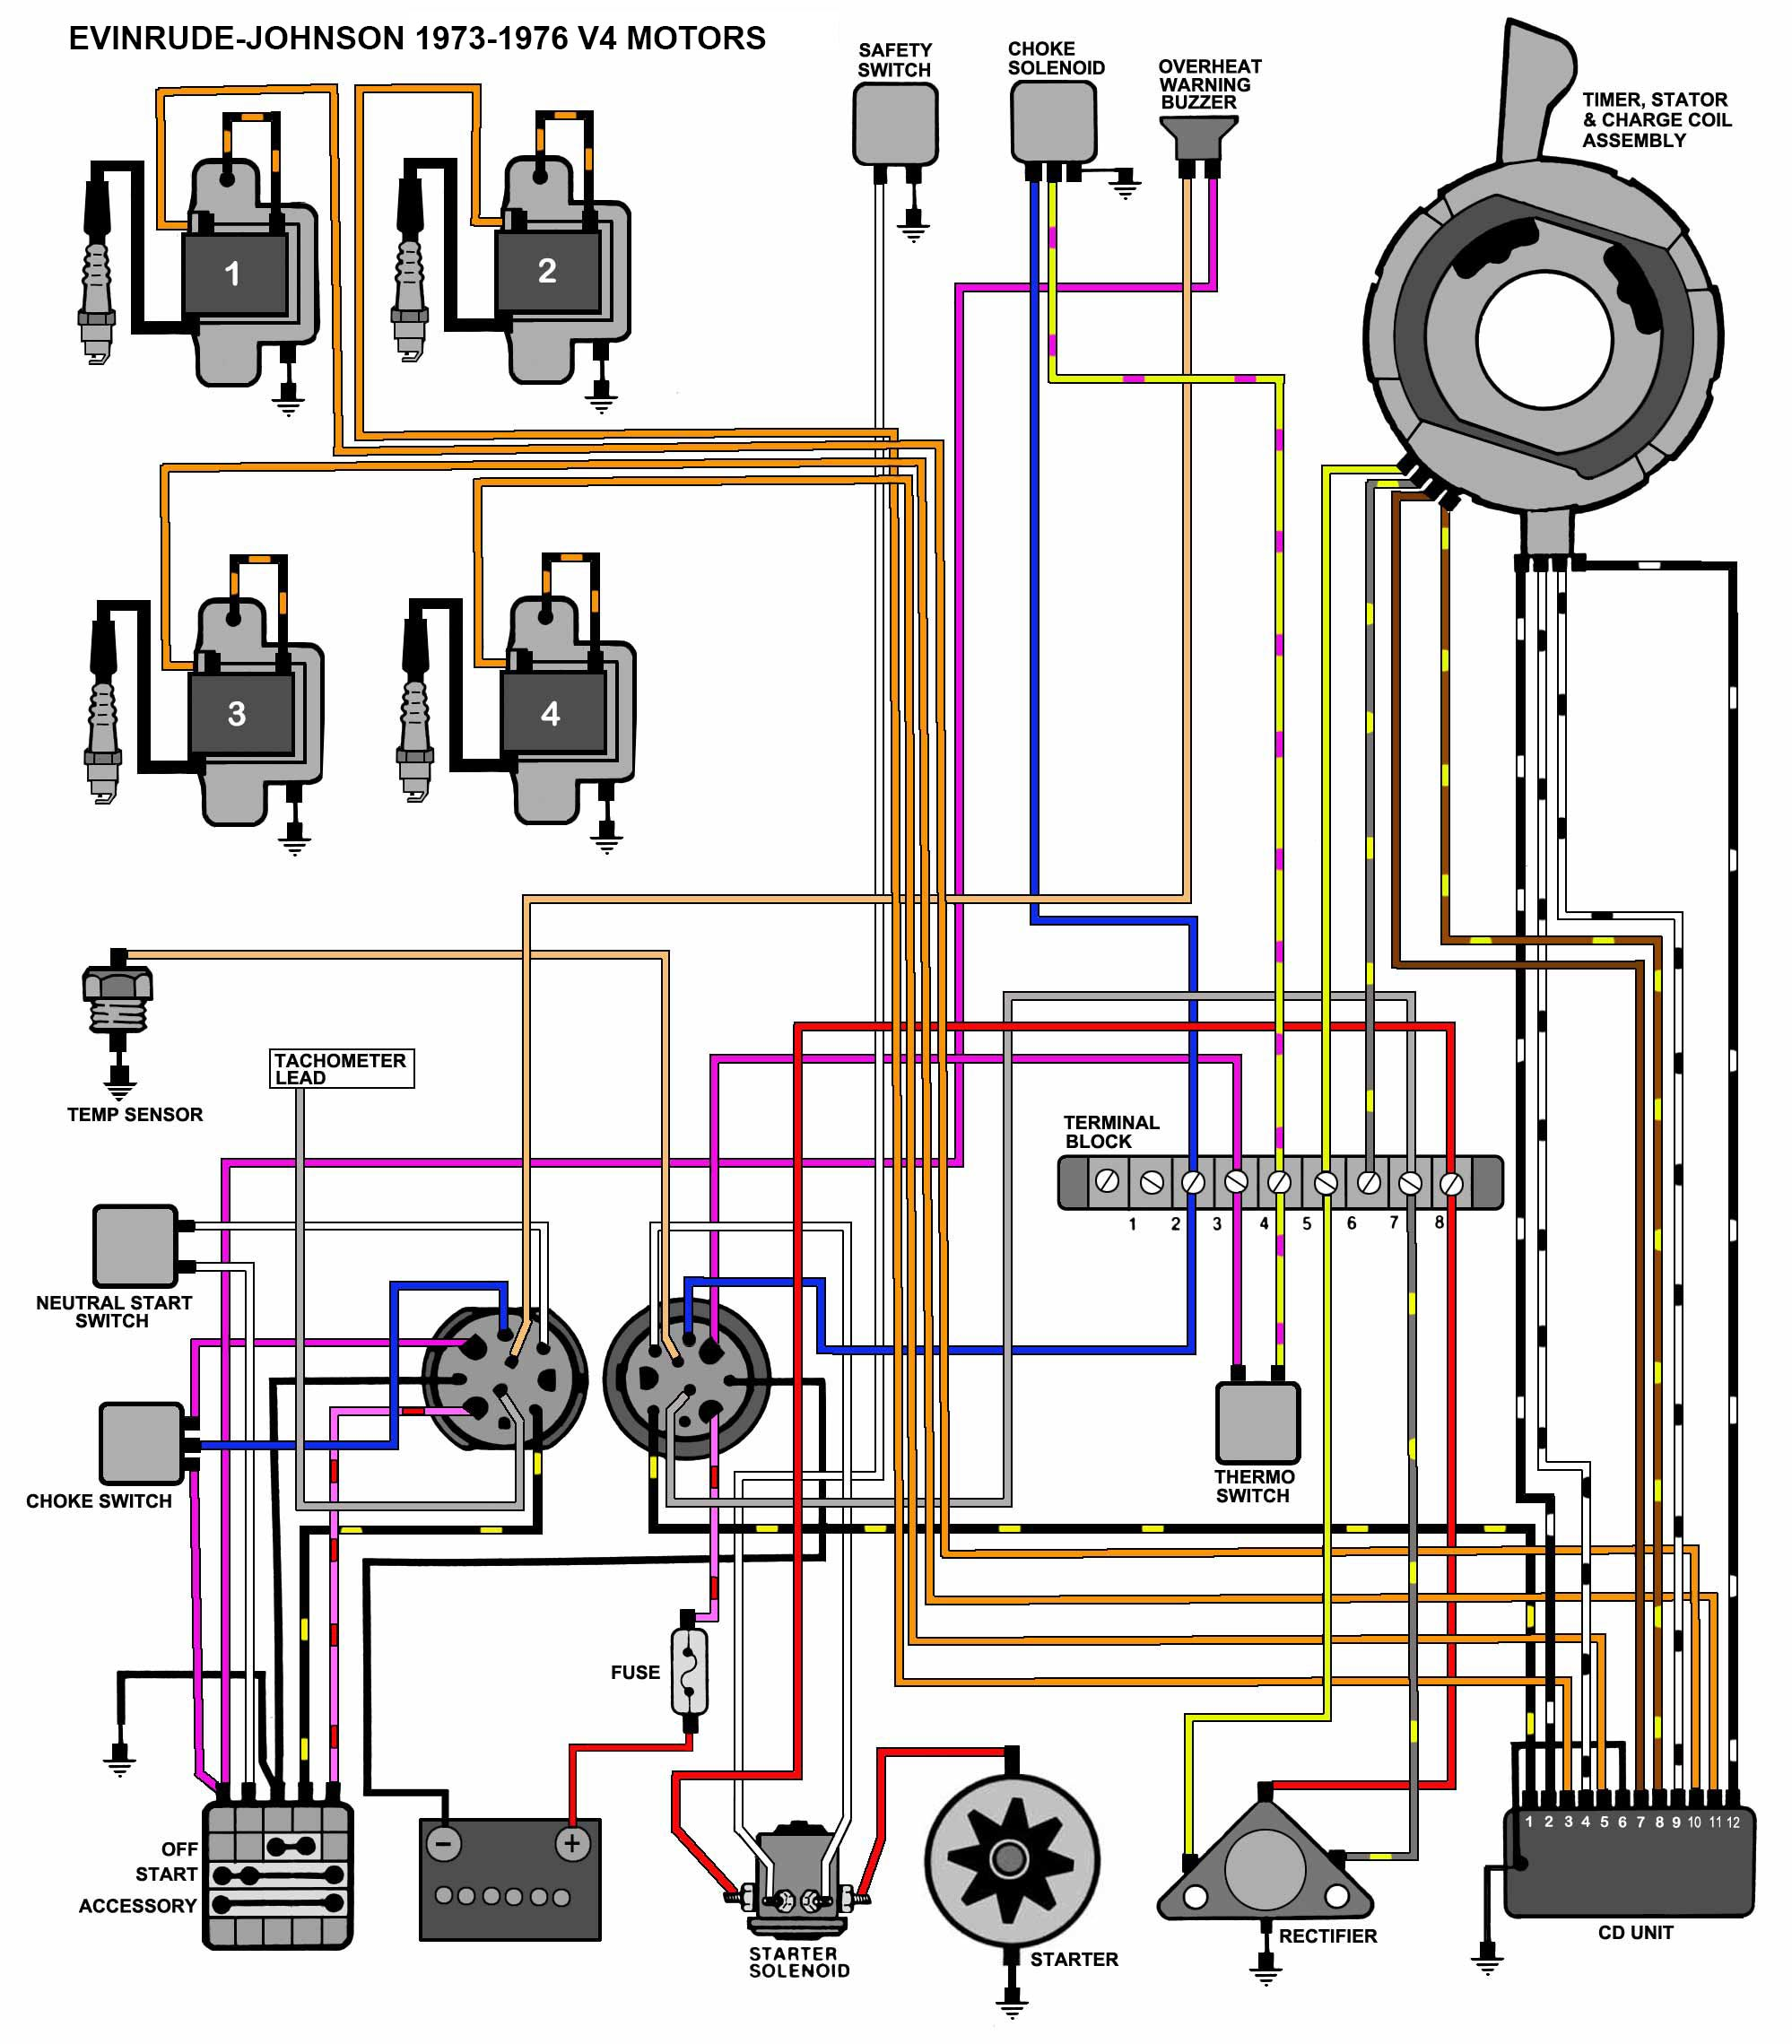 V4_1973 yamaha v4 115 outboard wiring diagram yamaha wiring diagrams  at bakdesigns.co